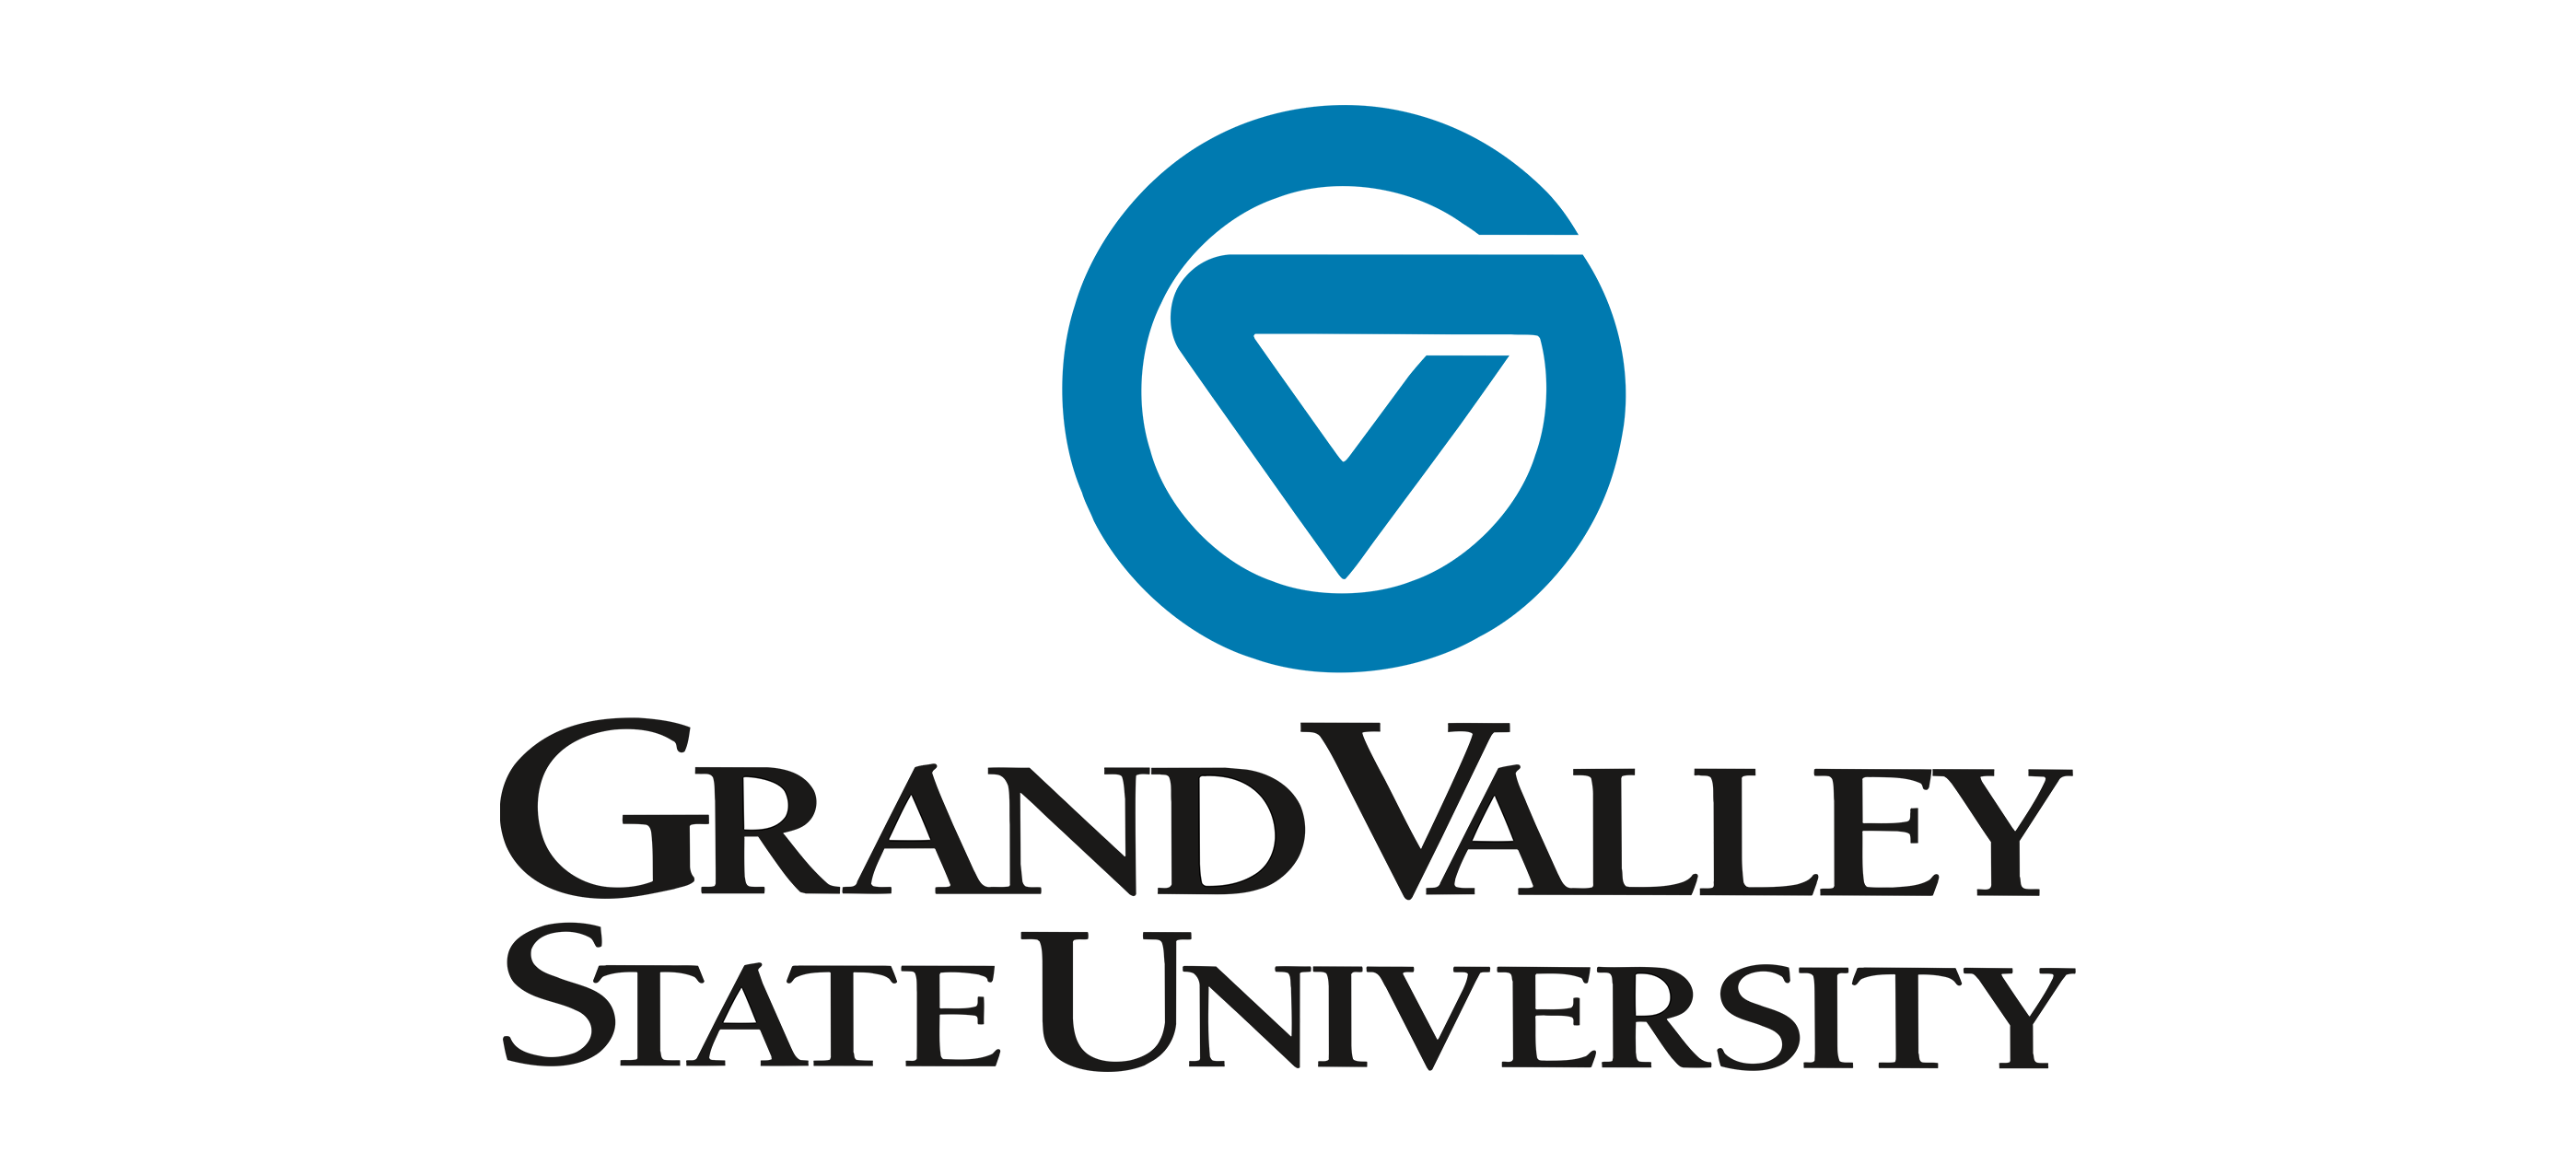 Grand Valley State University - Resource Page - Cover Image